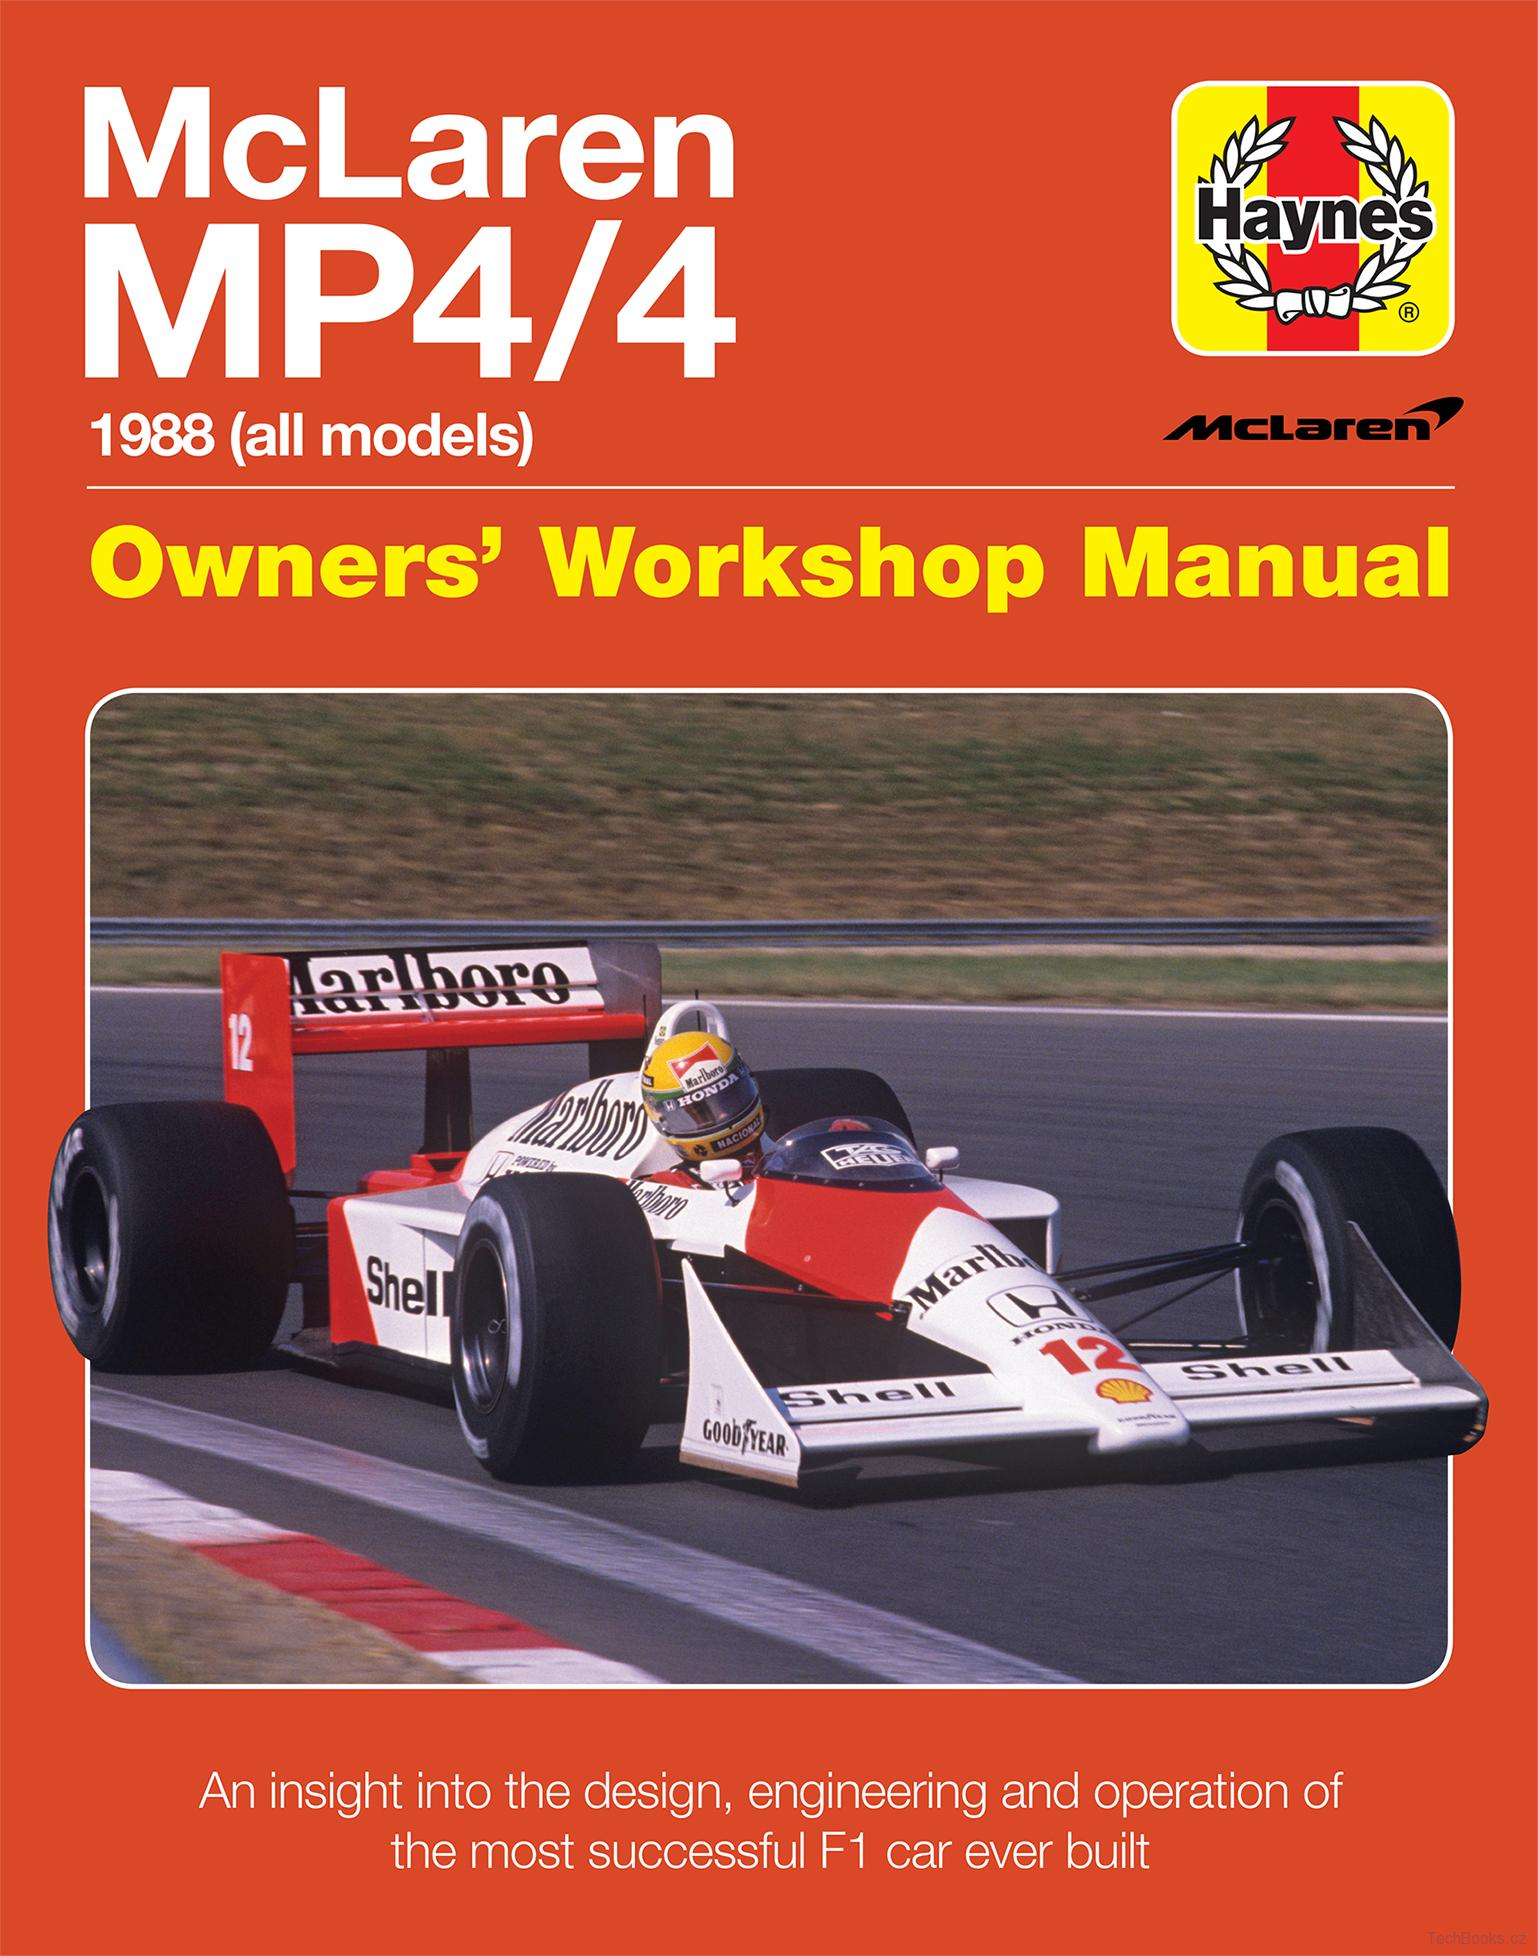 McLaren MP4/4 Manual (1988 all models)